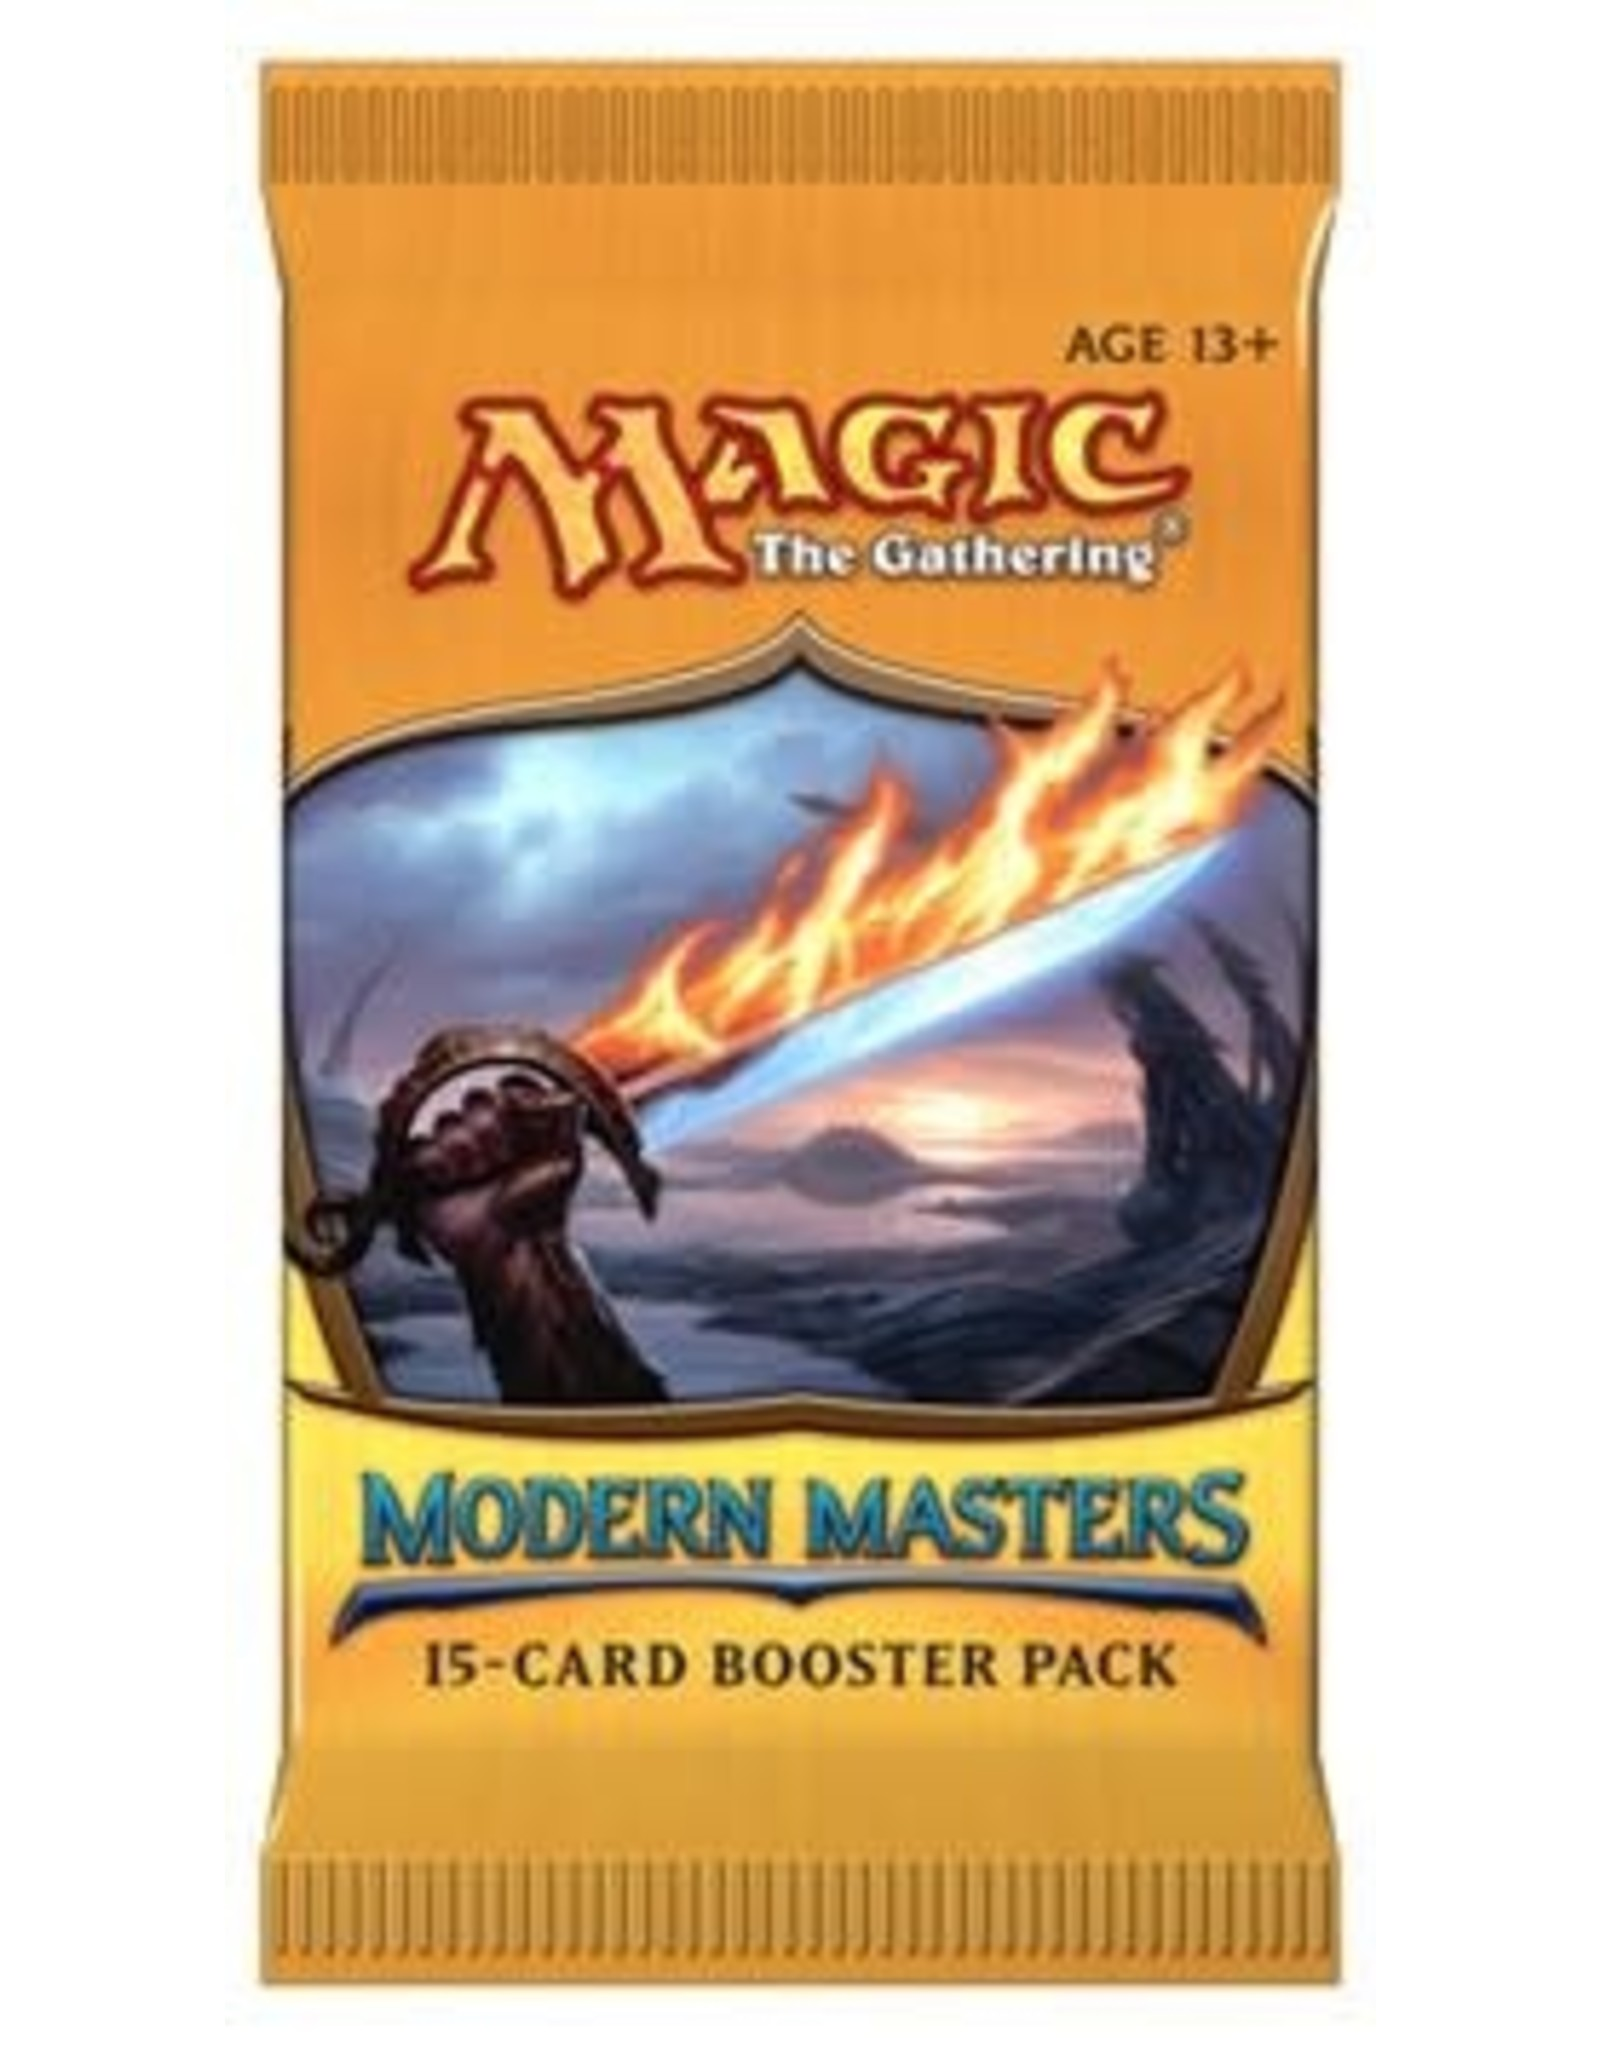 Modern Masters (2013) Booster Pack